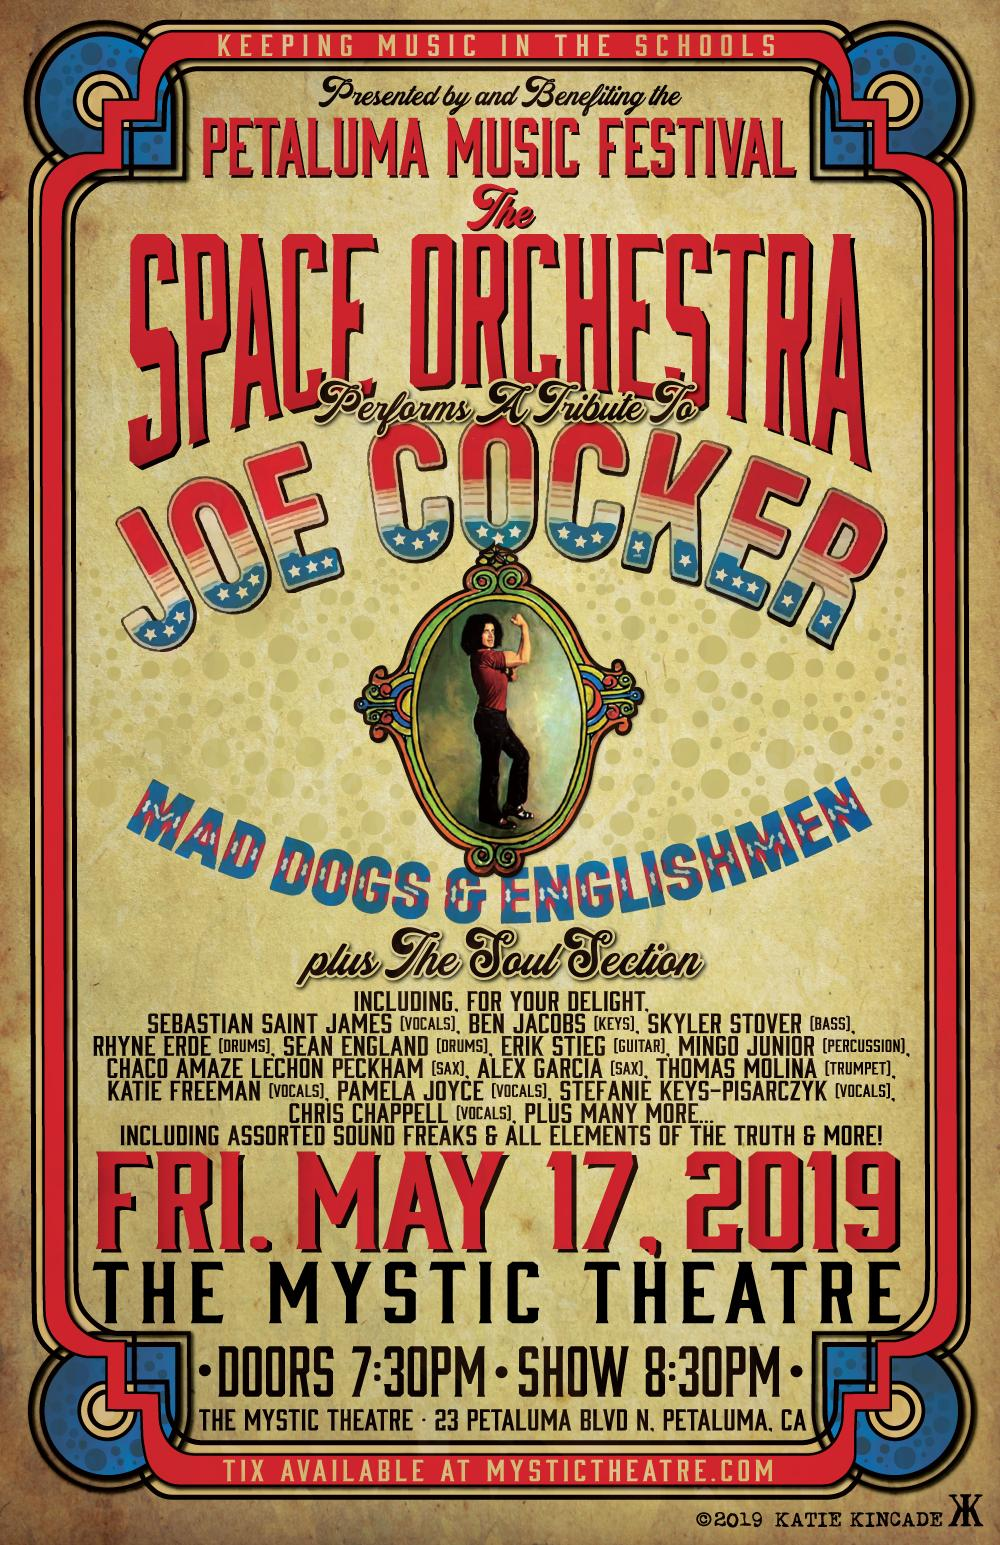 f14097e79bb A Smorgasbord of Sonoma County s Musical Talent — The Space Orchestra  Performs a Tribute to Joe Cocker — Mad Dogs   Englishmen Plus The Soul  Section